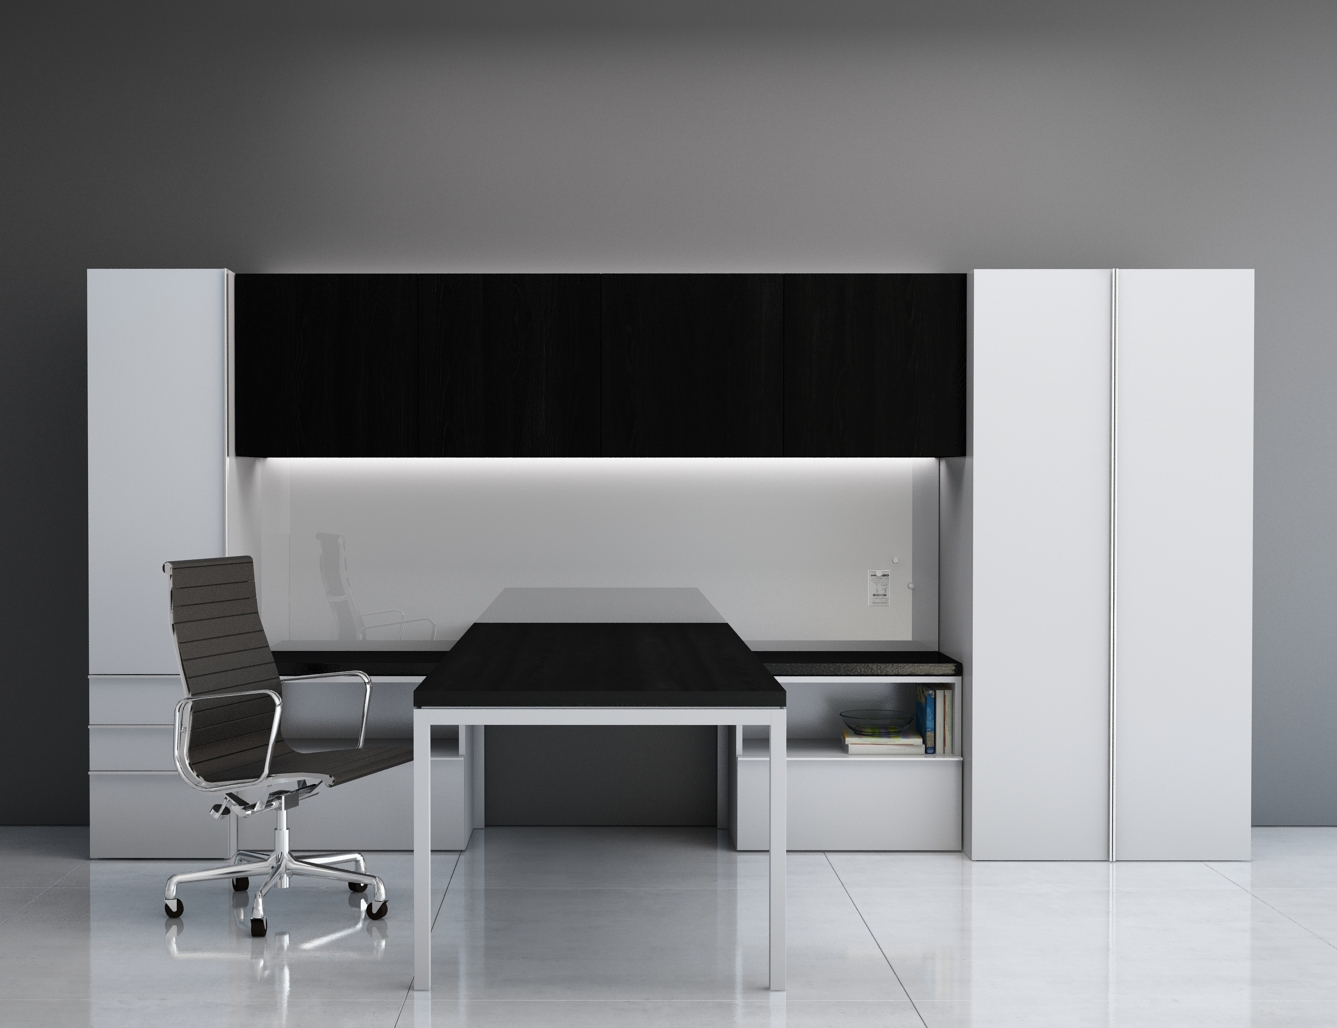 Private Offices - Innovant offers standard and custom private office case goods, desks and tables in a variety of sophisticated finishes, complemented with intelligent cabling and electrics features that can be tailored to suit exact requirements.